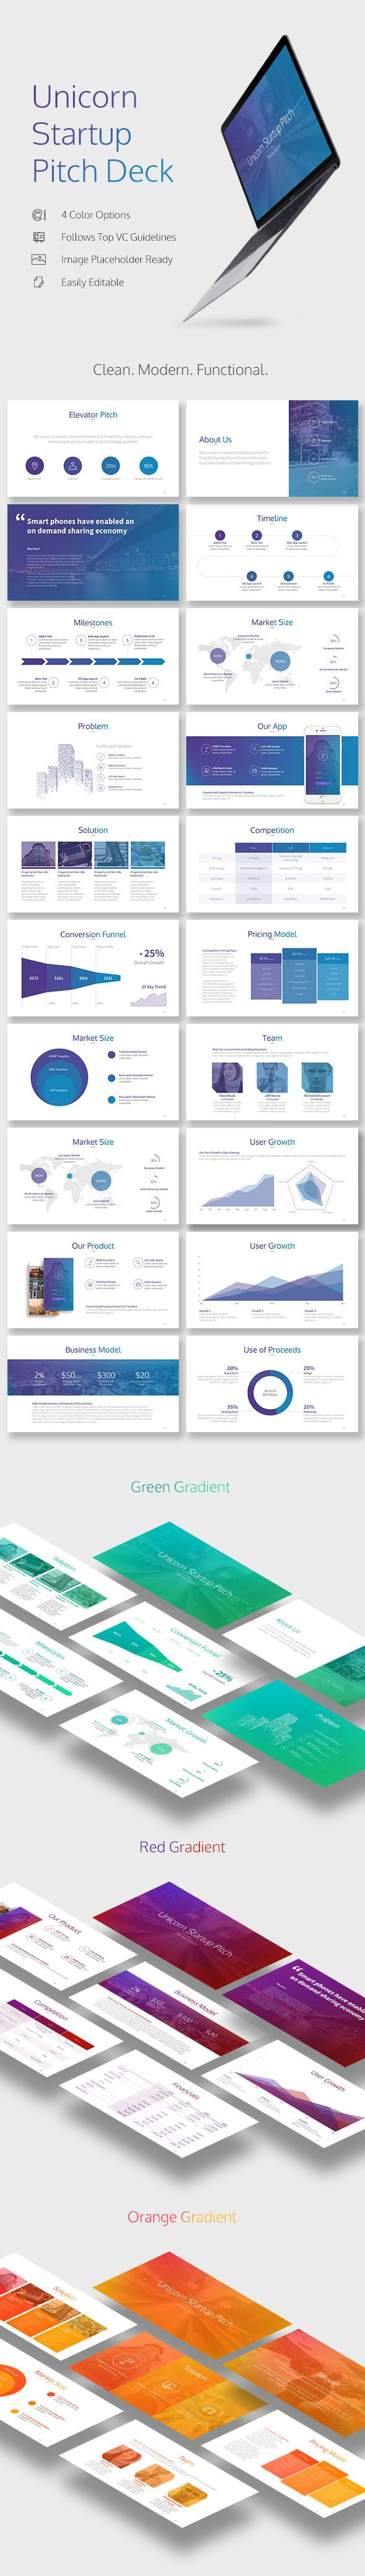 Unicorn Startup Pitch Deck - PowerPoint Template. Download here:…